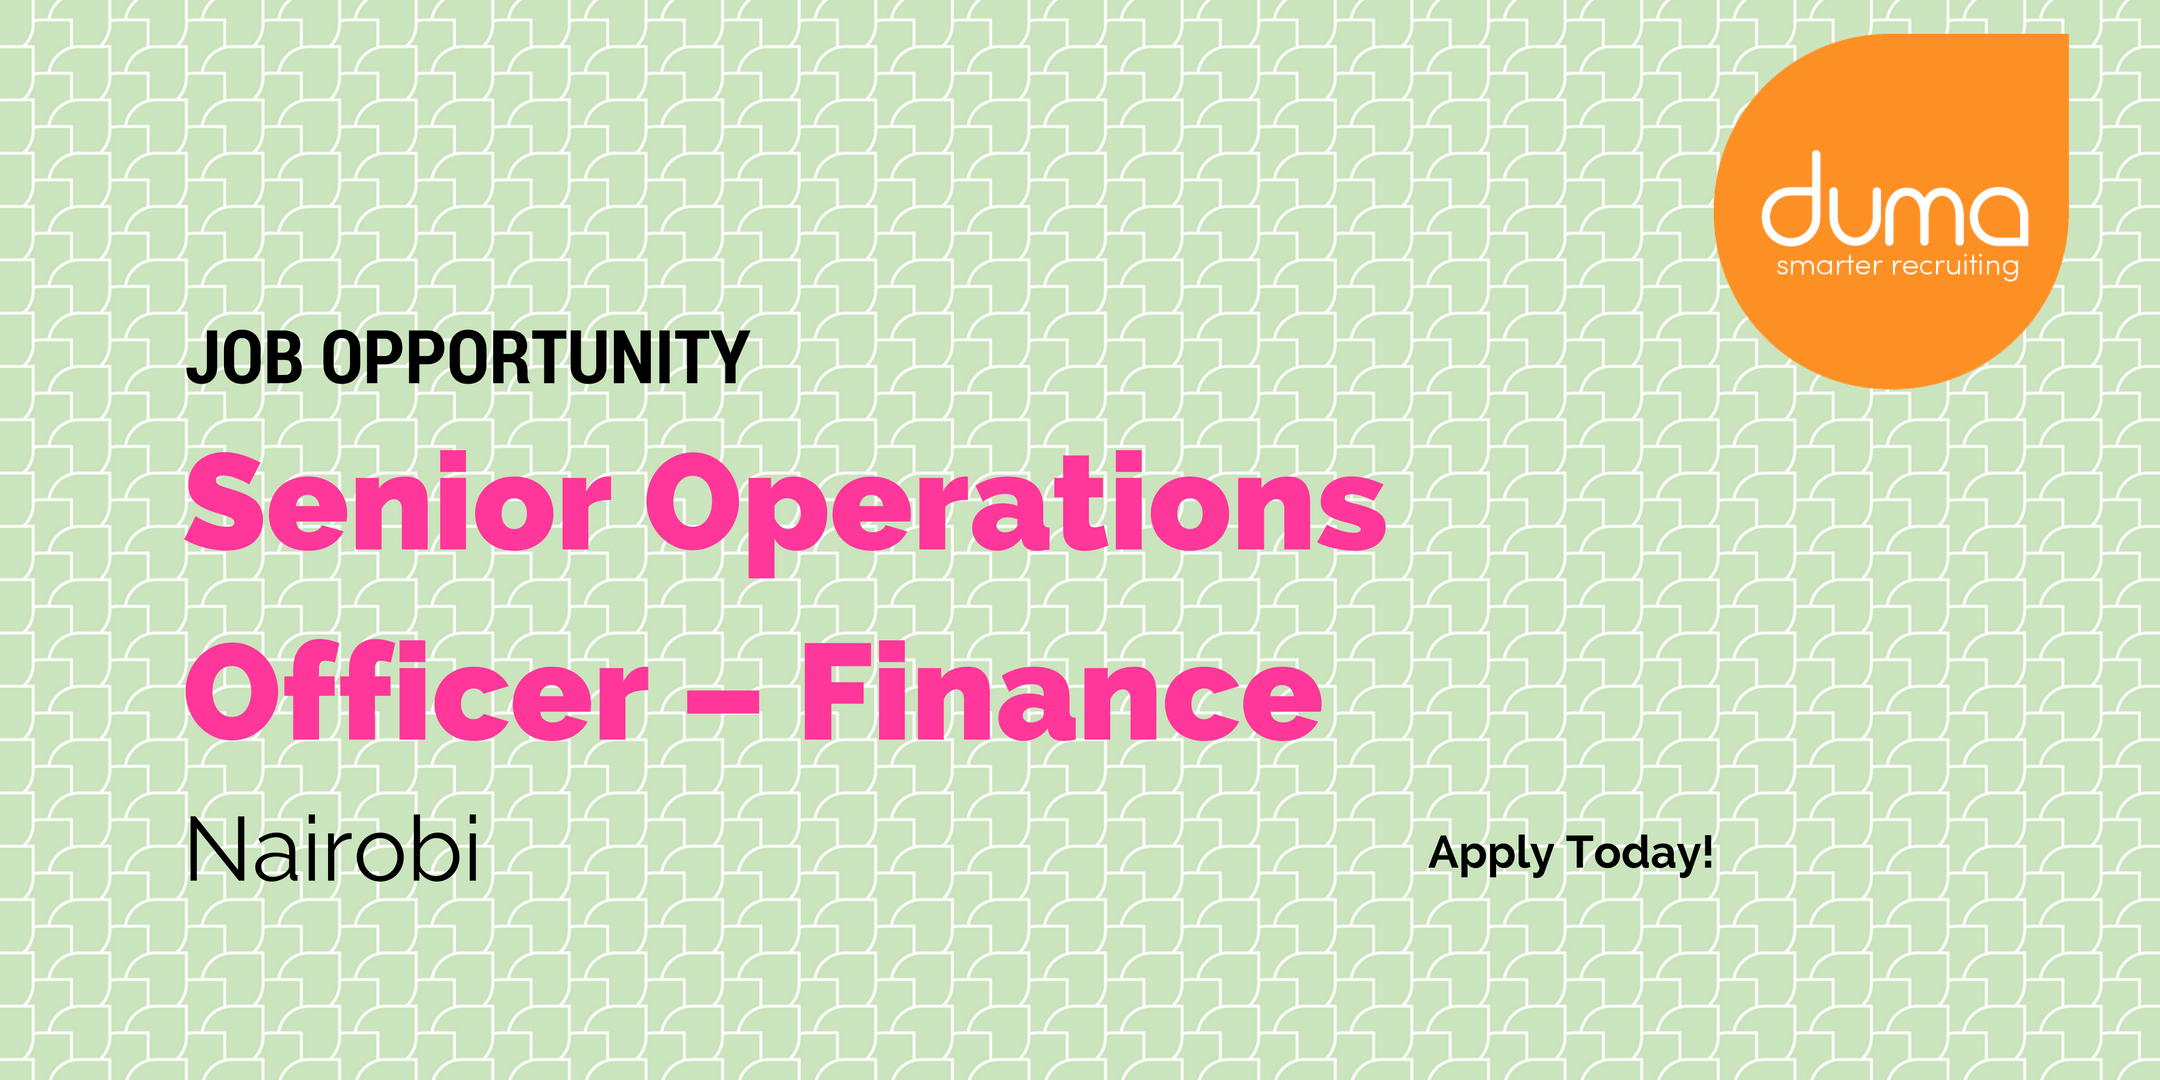 Job vacancy - head of operations - finance for a fast growing social enterprise in the energy sector. Apply today to land your dream job